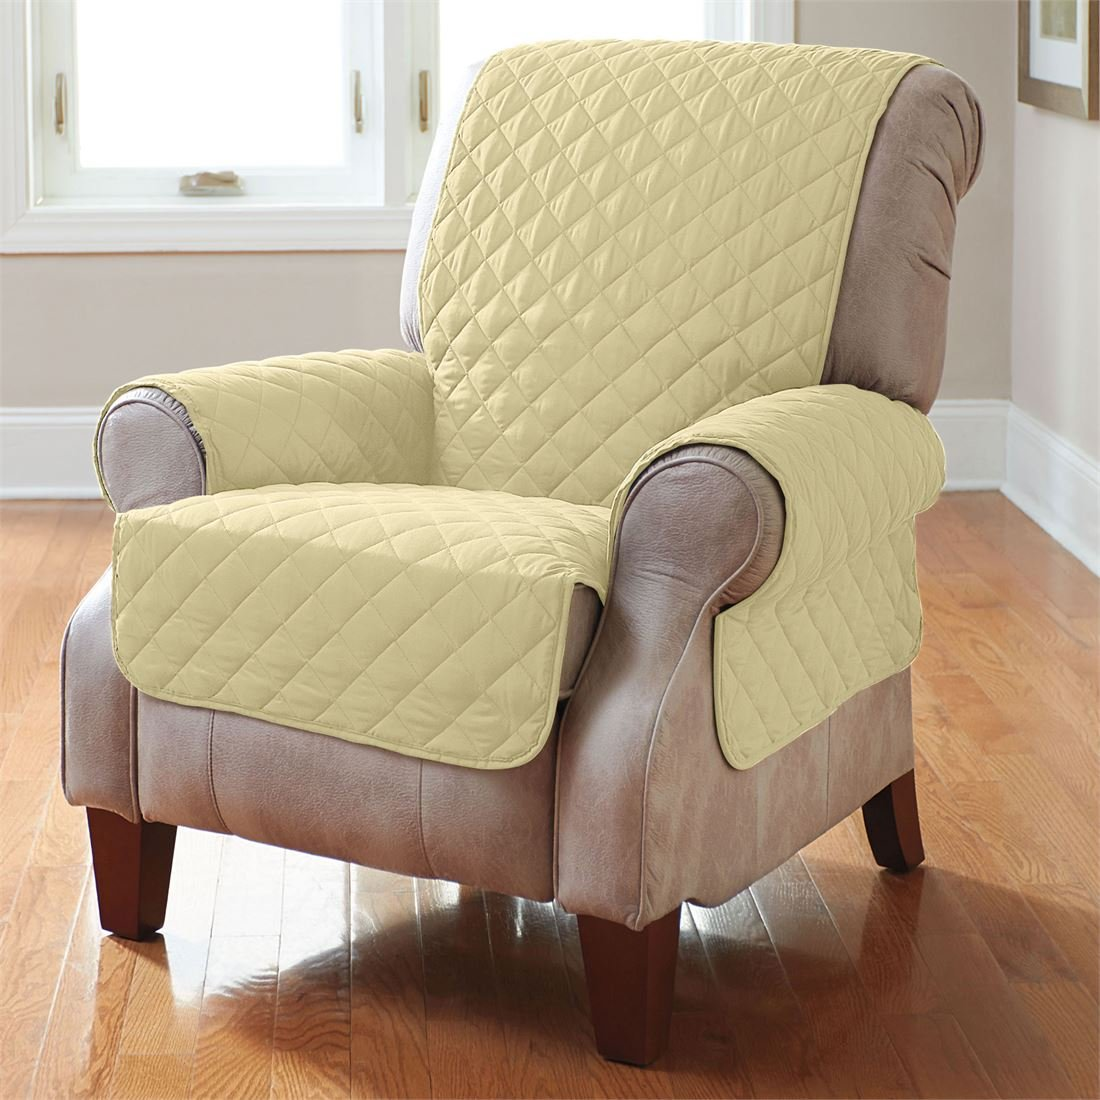 BrylaneHome Bh Studio Water-Repellent Microfiber Recliner Protector (Yellow,0)